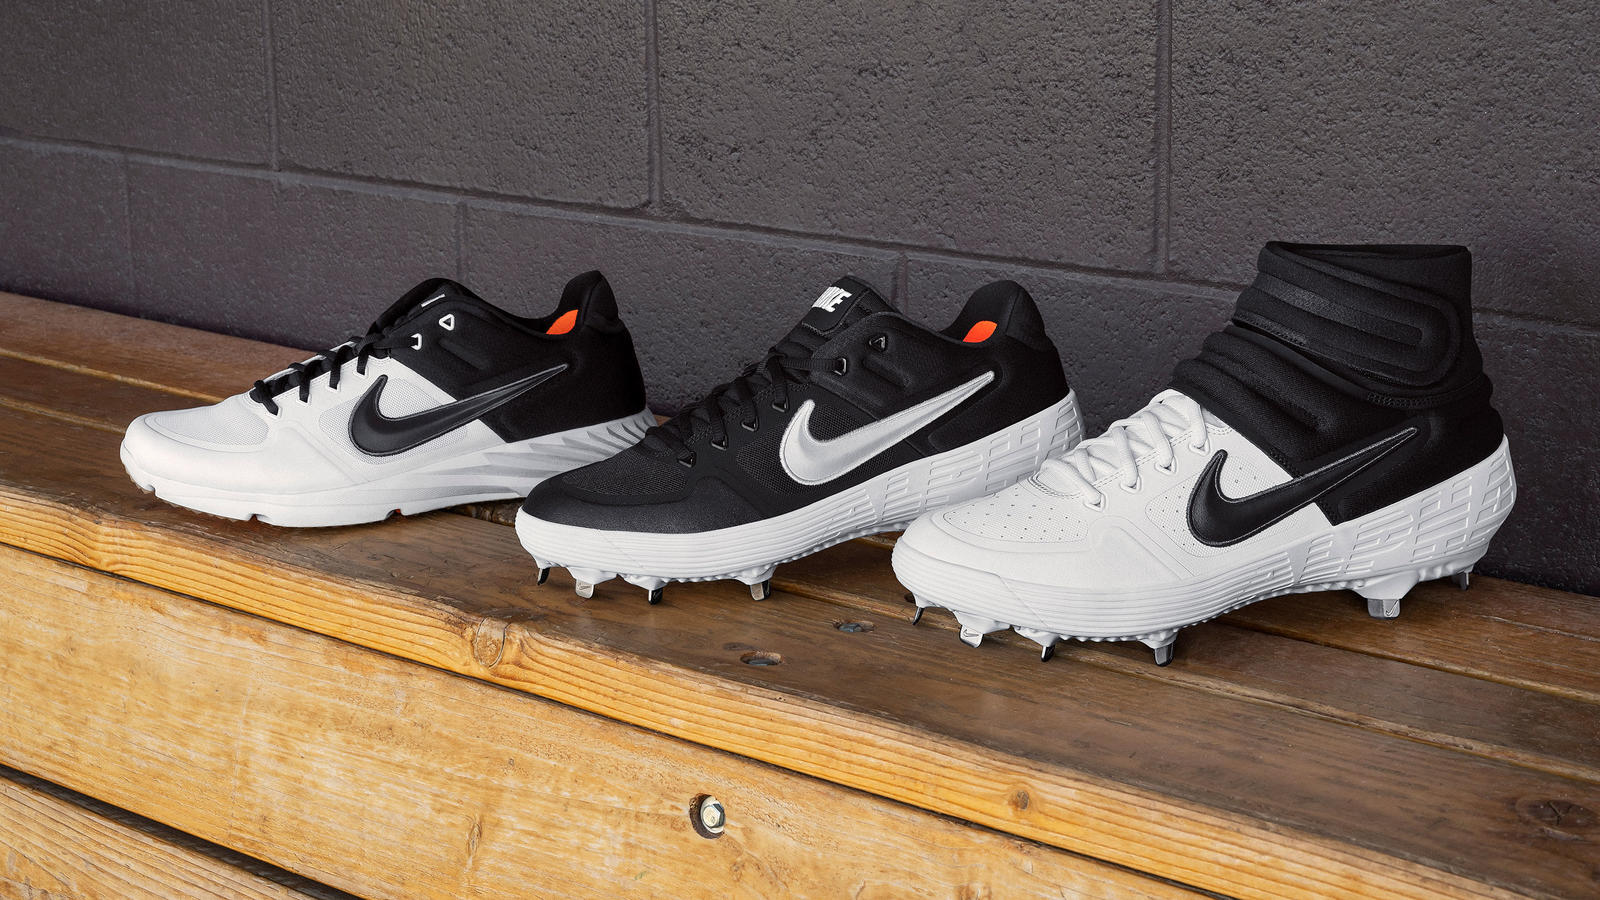 Nike Alpha Huarache Elite 2 Cleat and Turf Shoe 0